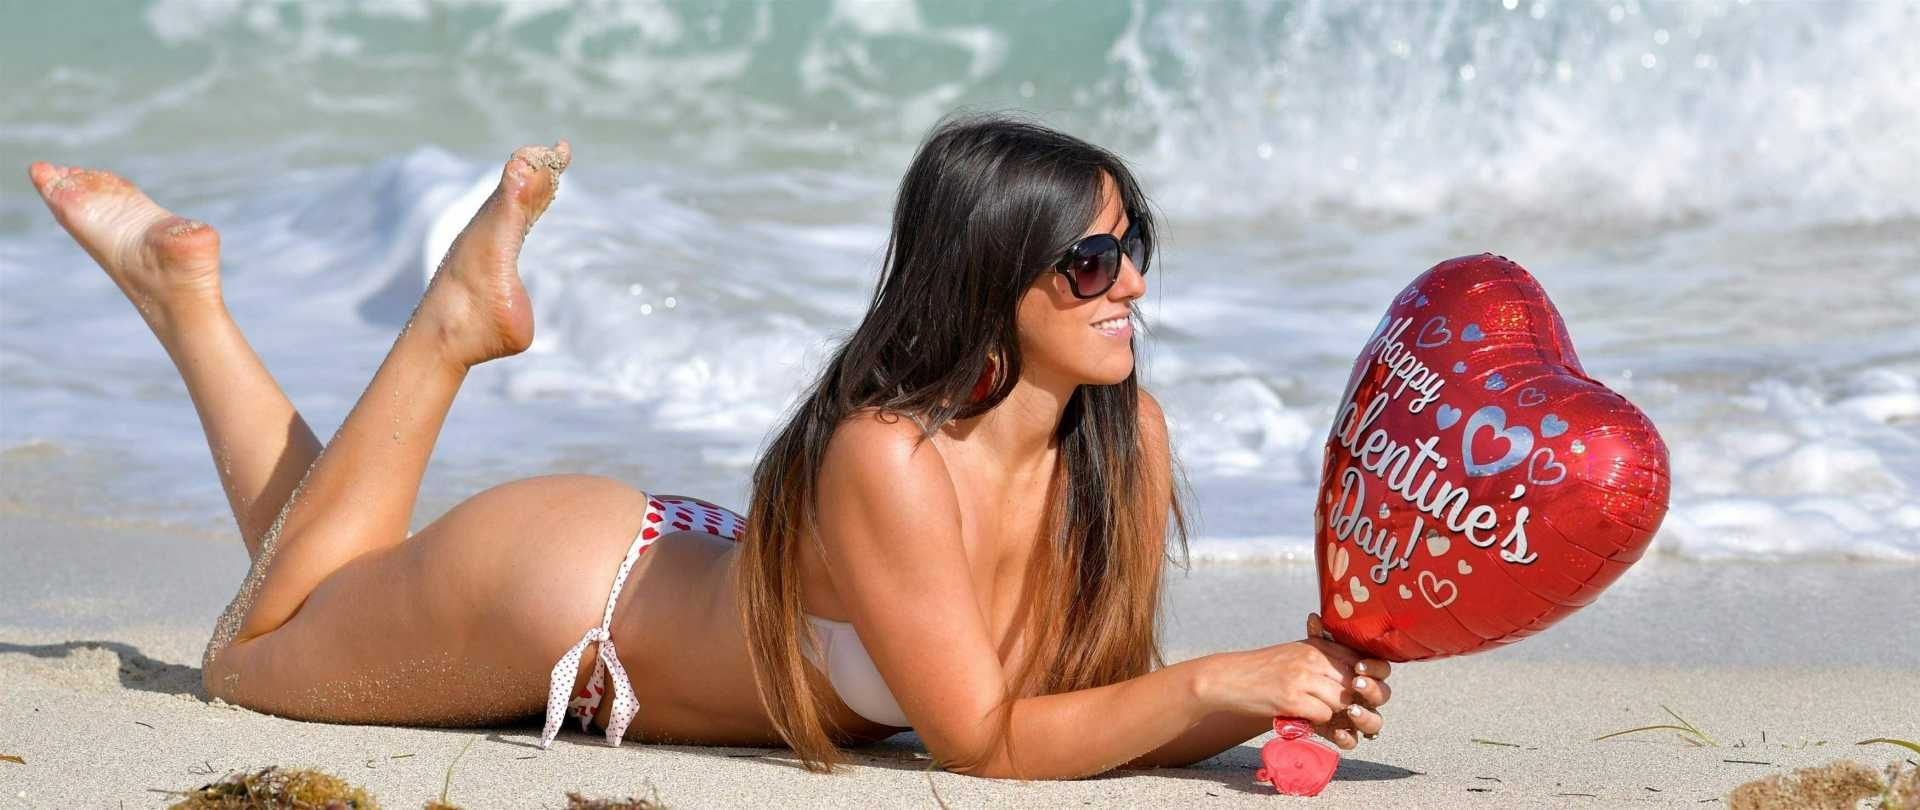 327f2b9d8 Claudia Romani in Bikini on Valentine s Day at the Beach in Miami Posted on  Feb. 15th